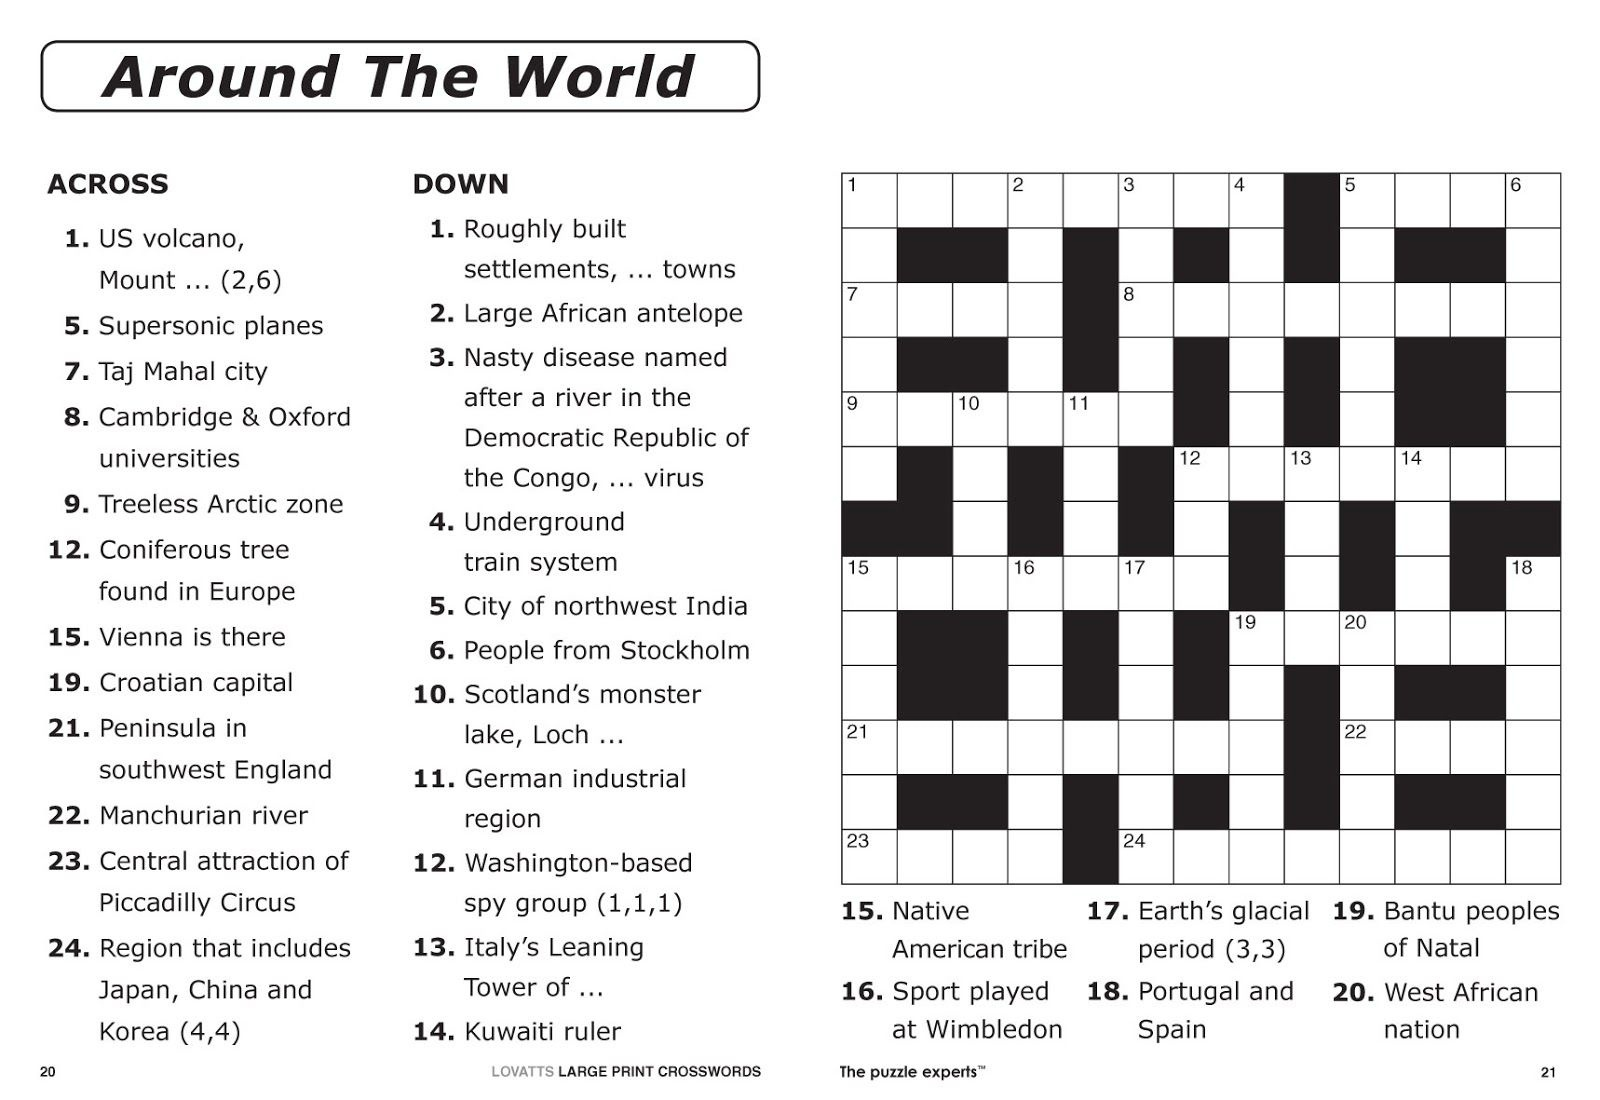 Free Printable Large Print Crossword Puzzles | M3U8 - Free Printable Crossword Puzzle Maker Download